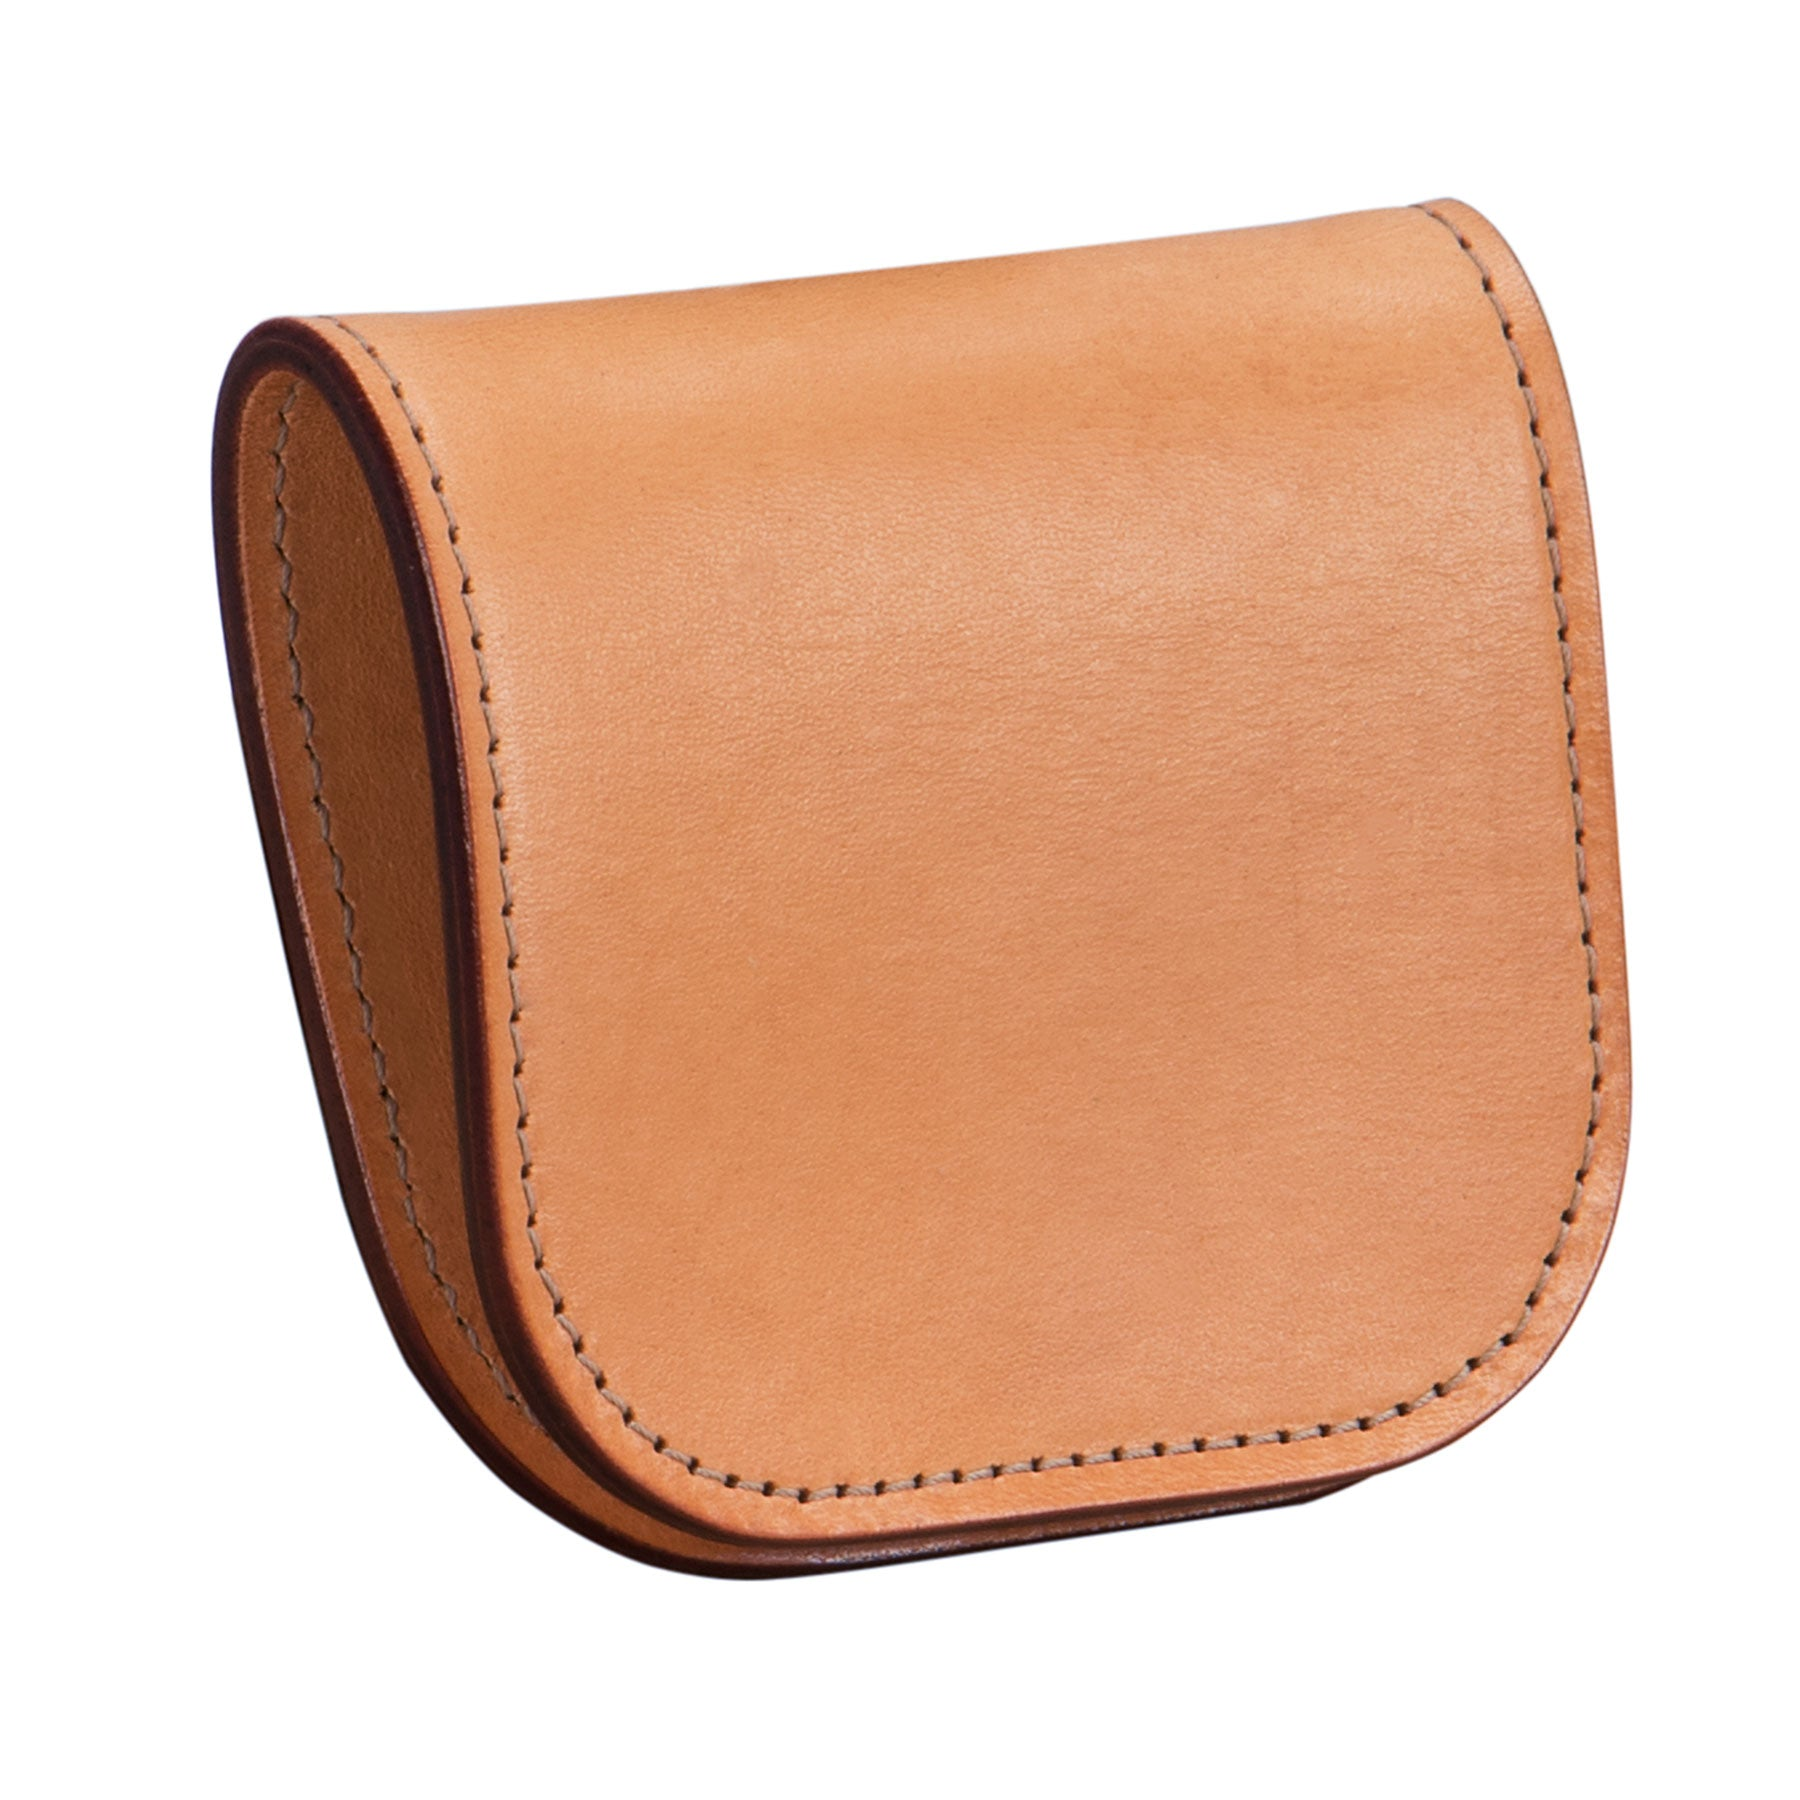 Glaser Designs Coin Case. Hand burnished Natural vegetable tanned leather.